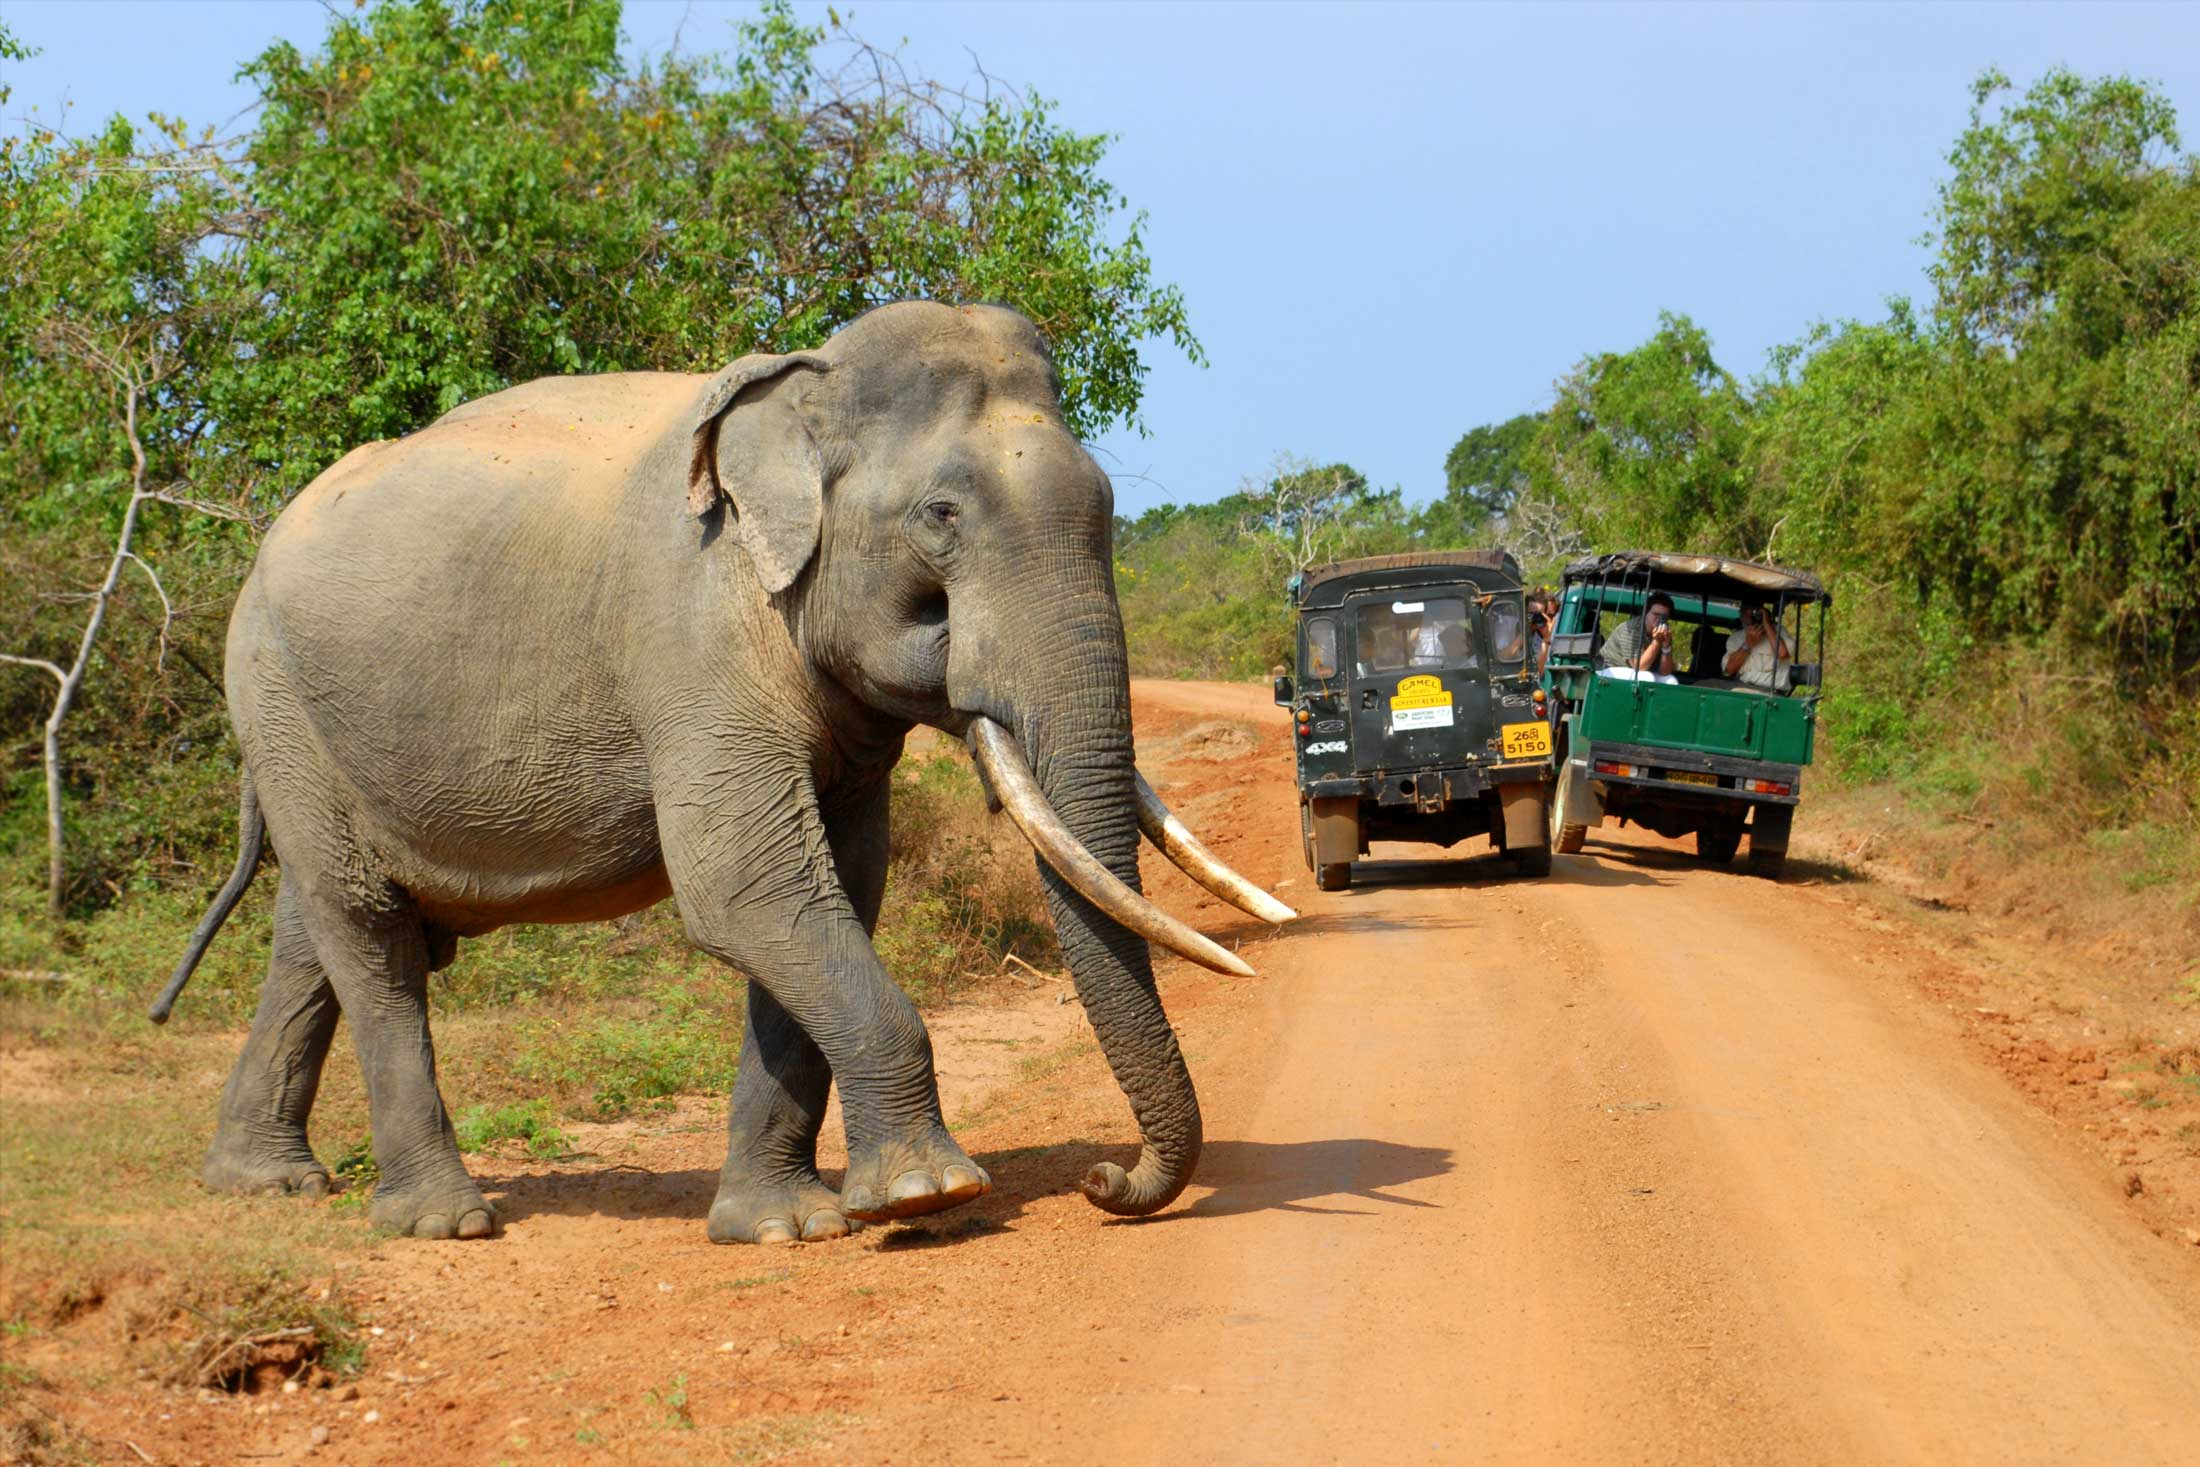 The Safari Options in Sri Lanka. Yala or Udawalawe?